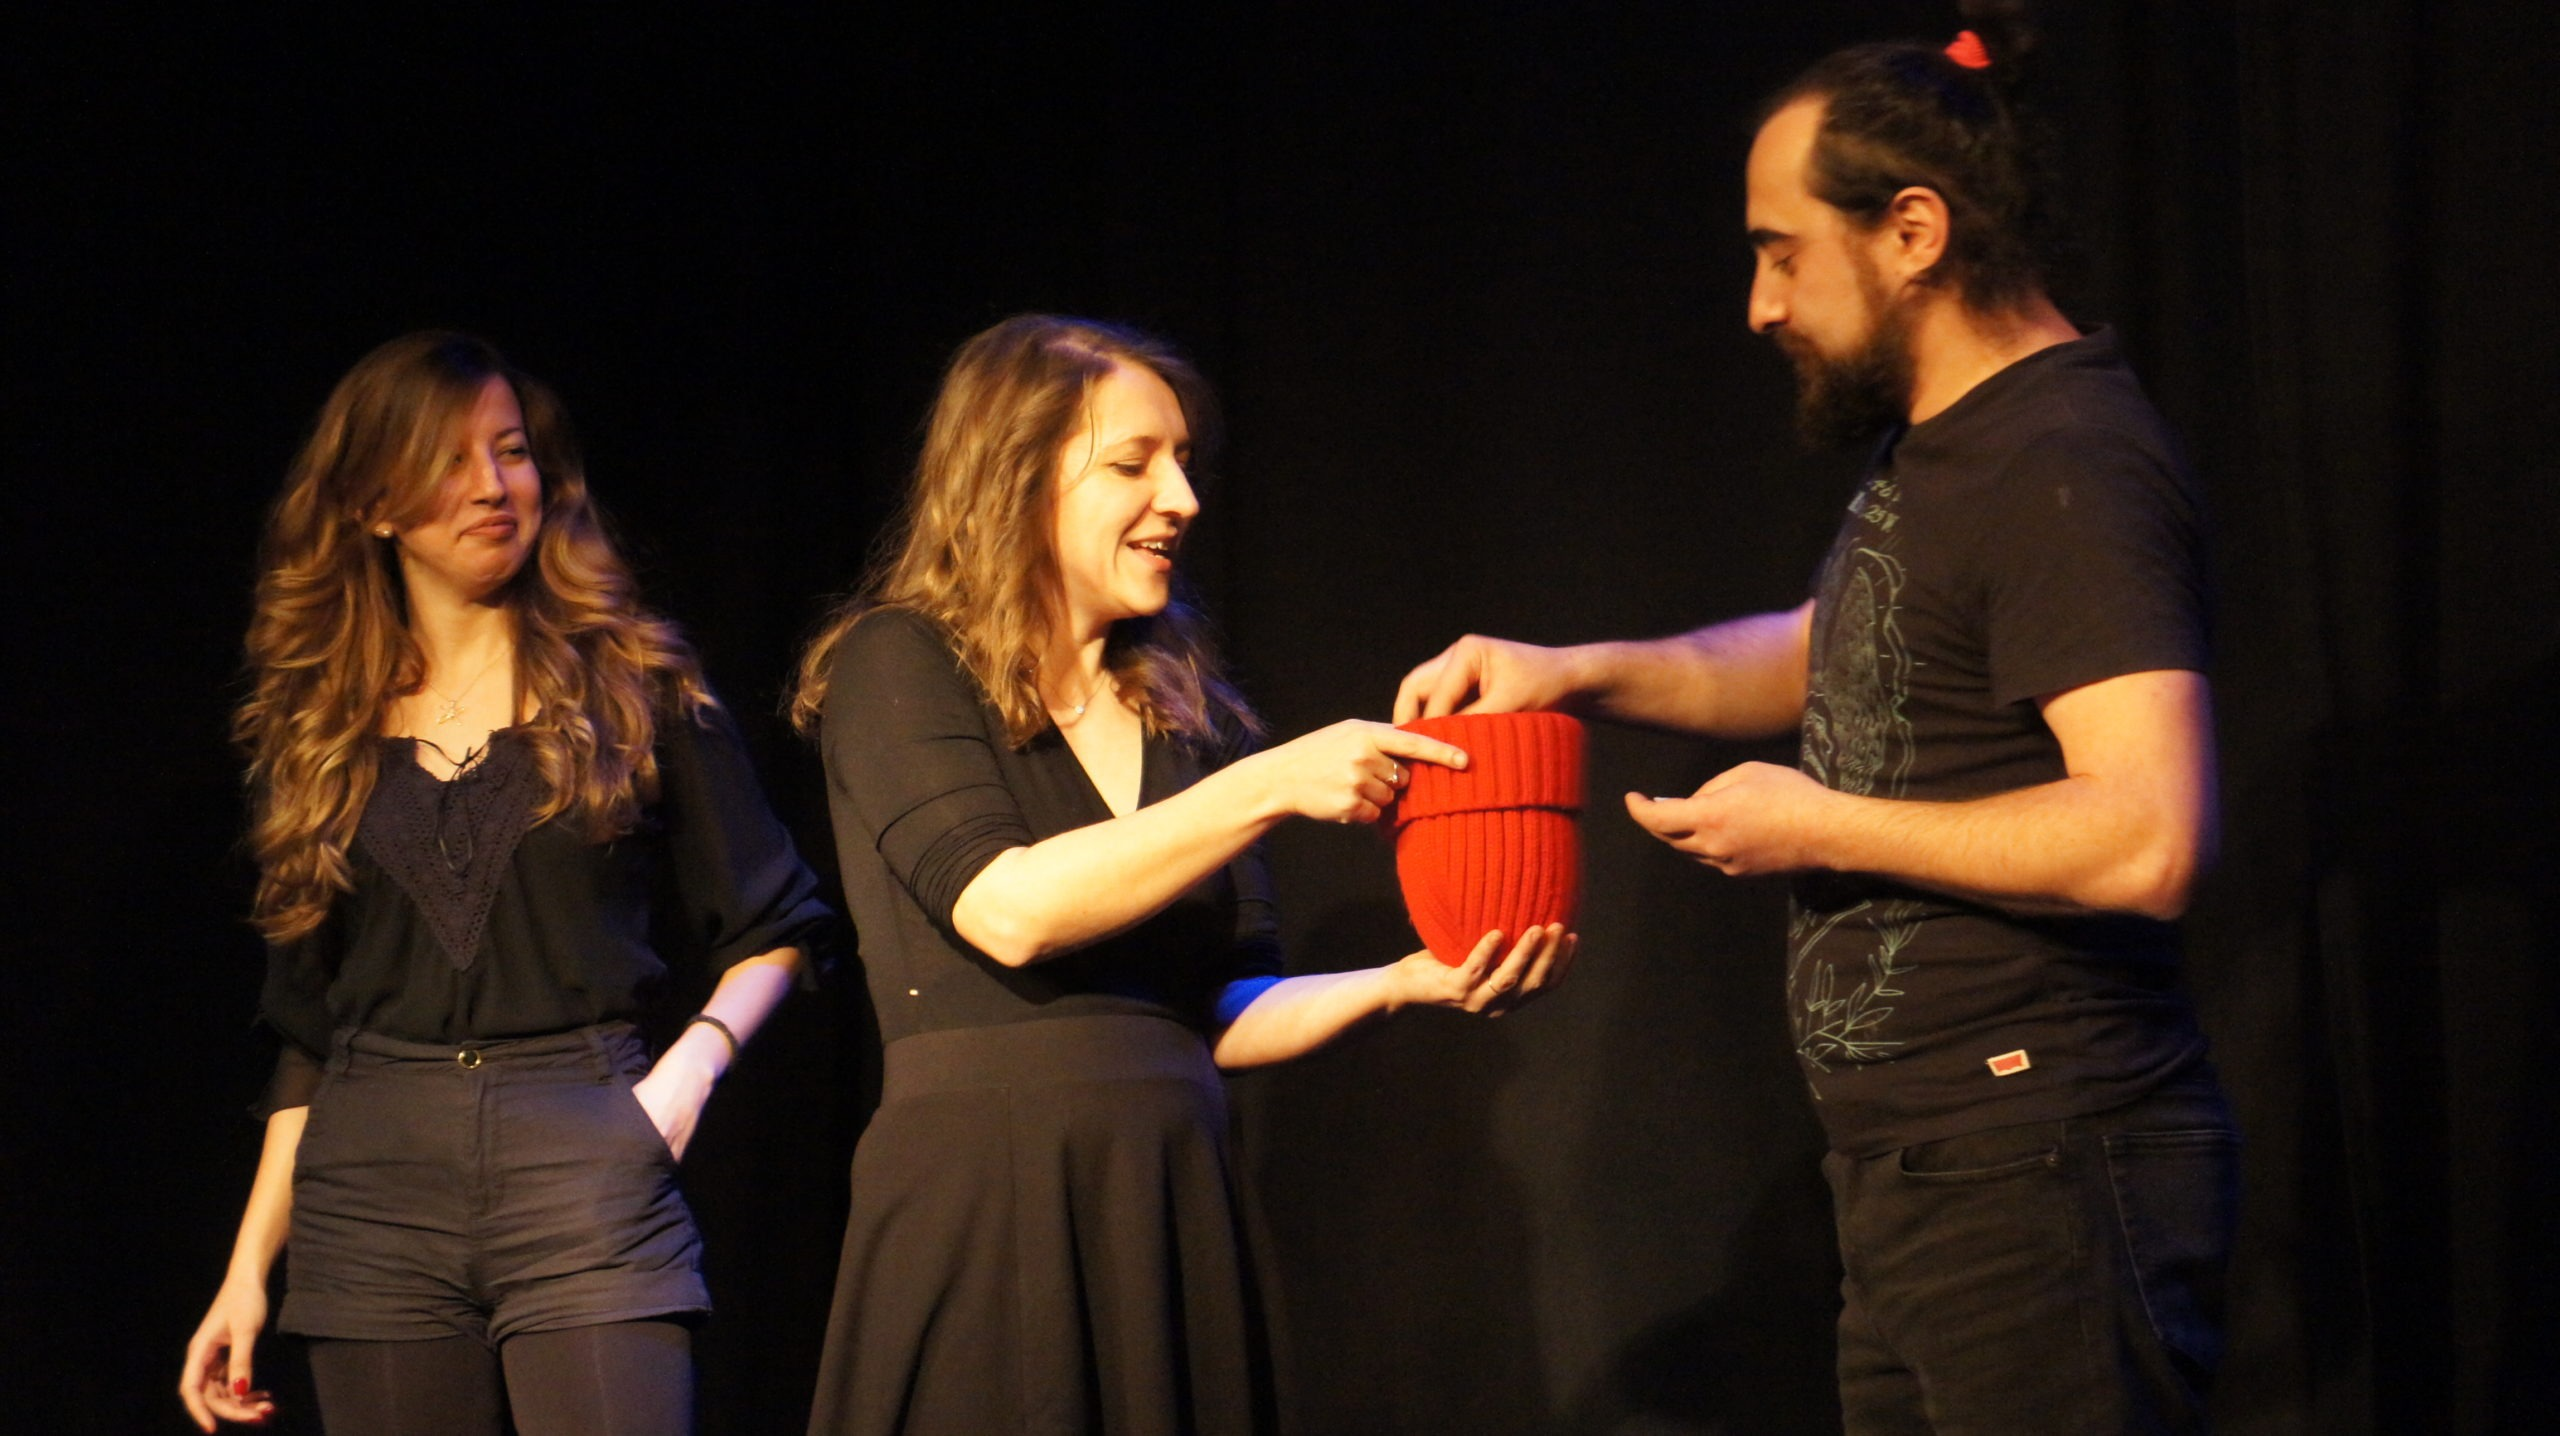 Act Attack's improv and physical show. Two women and a man on stage wearing black. The woman in the middle gives the man a red beanie to draw something out of